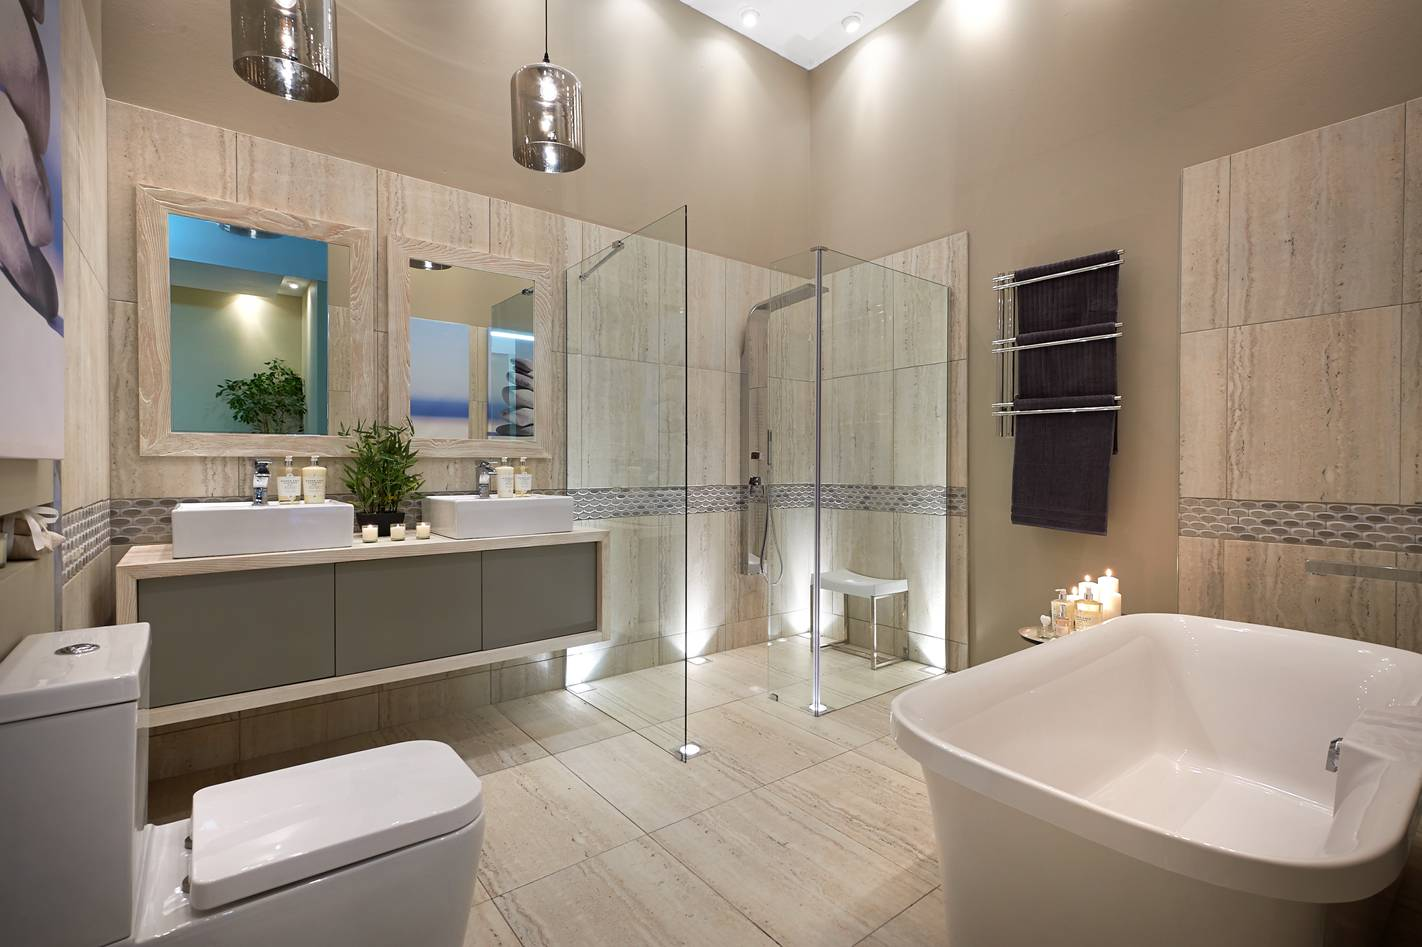 Top design tips for family bathrooms for Top bathroom design ideas